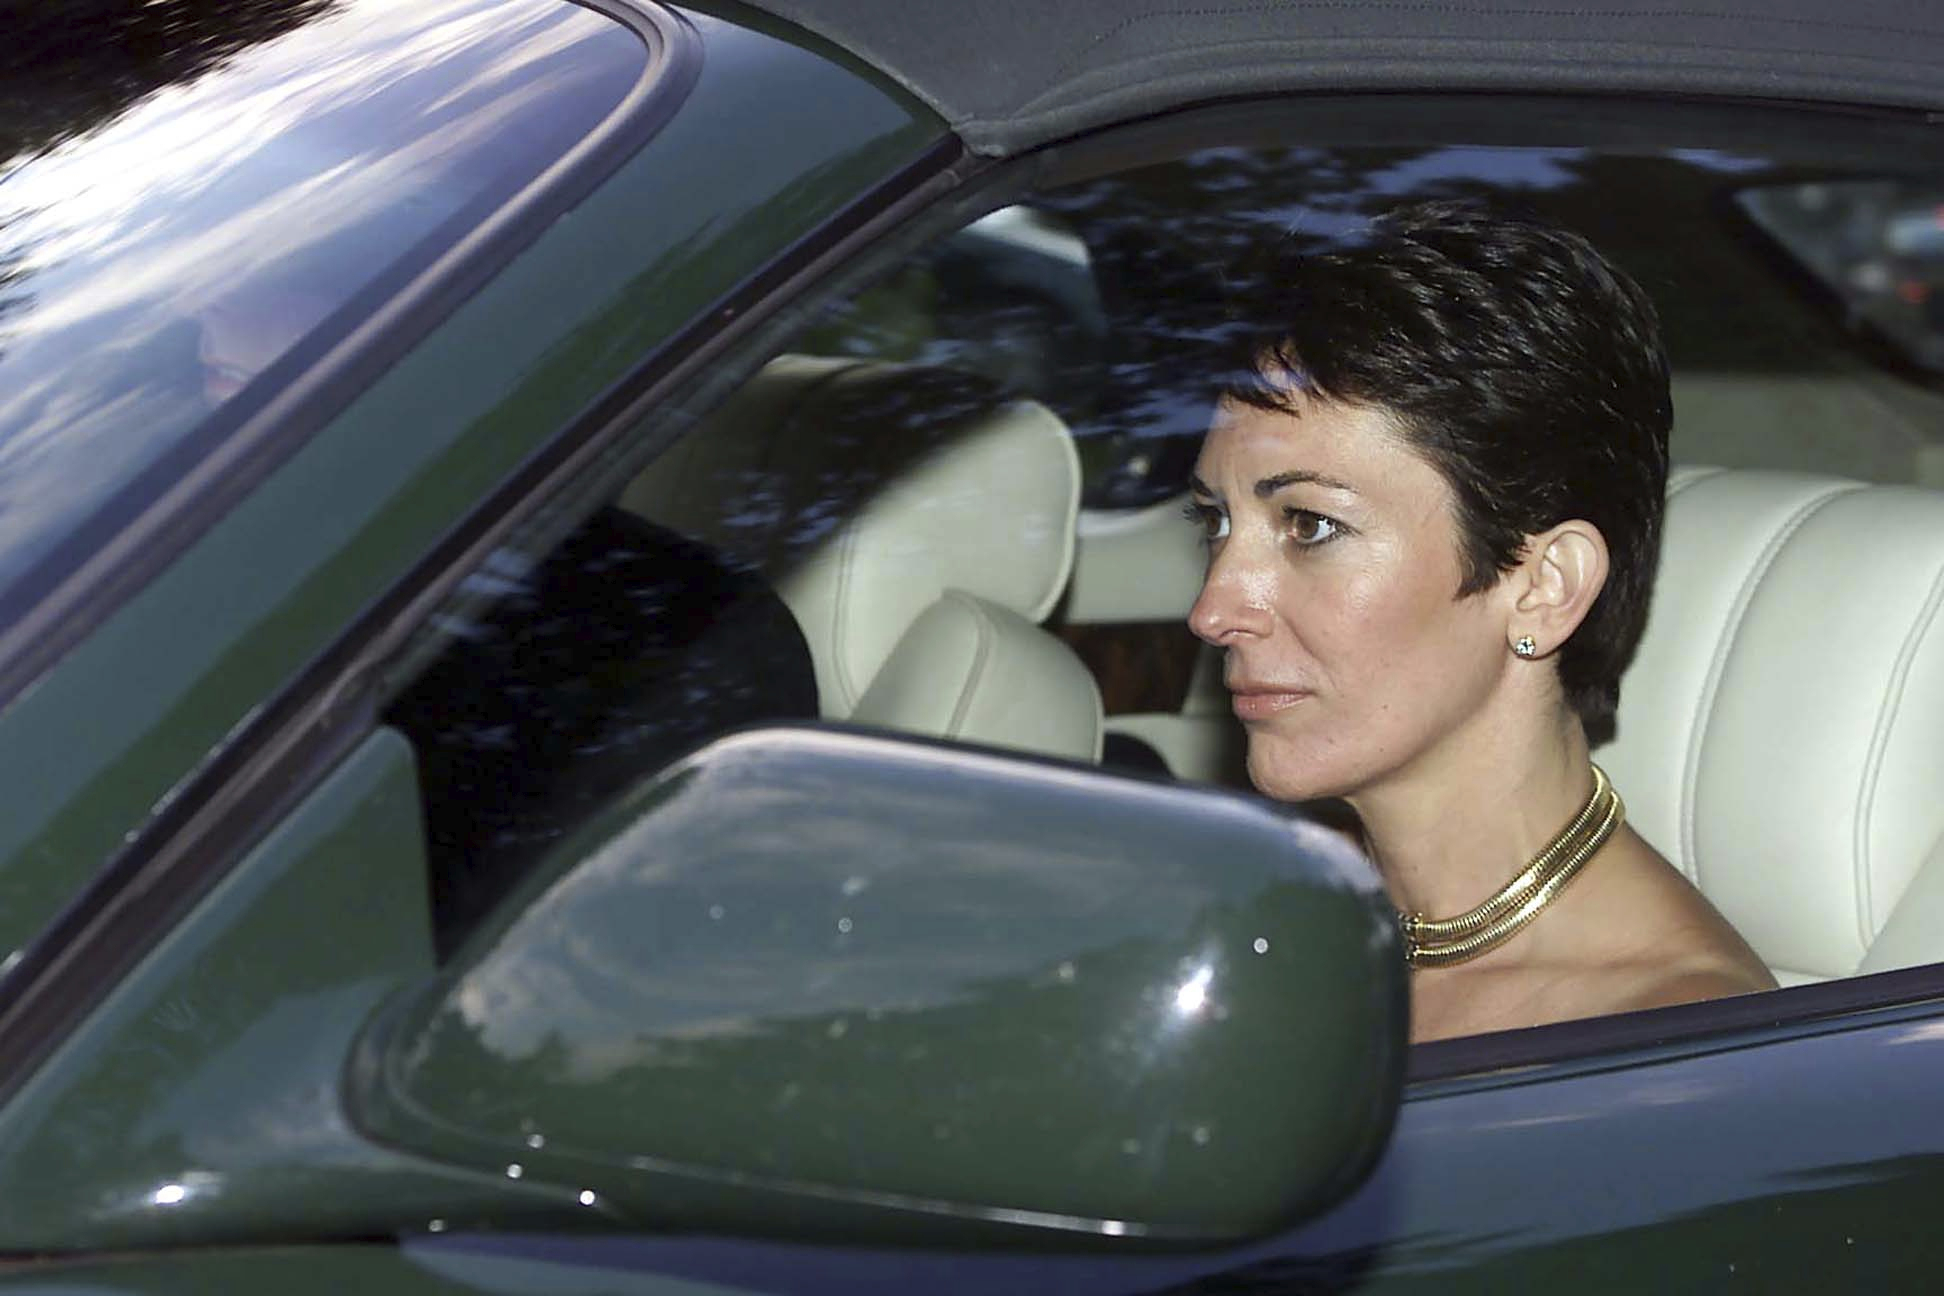 Ghislaine Maxwell Is Still in Jail and the Feds Are Working Very Hard to Keep Her There